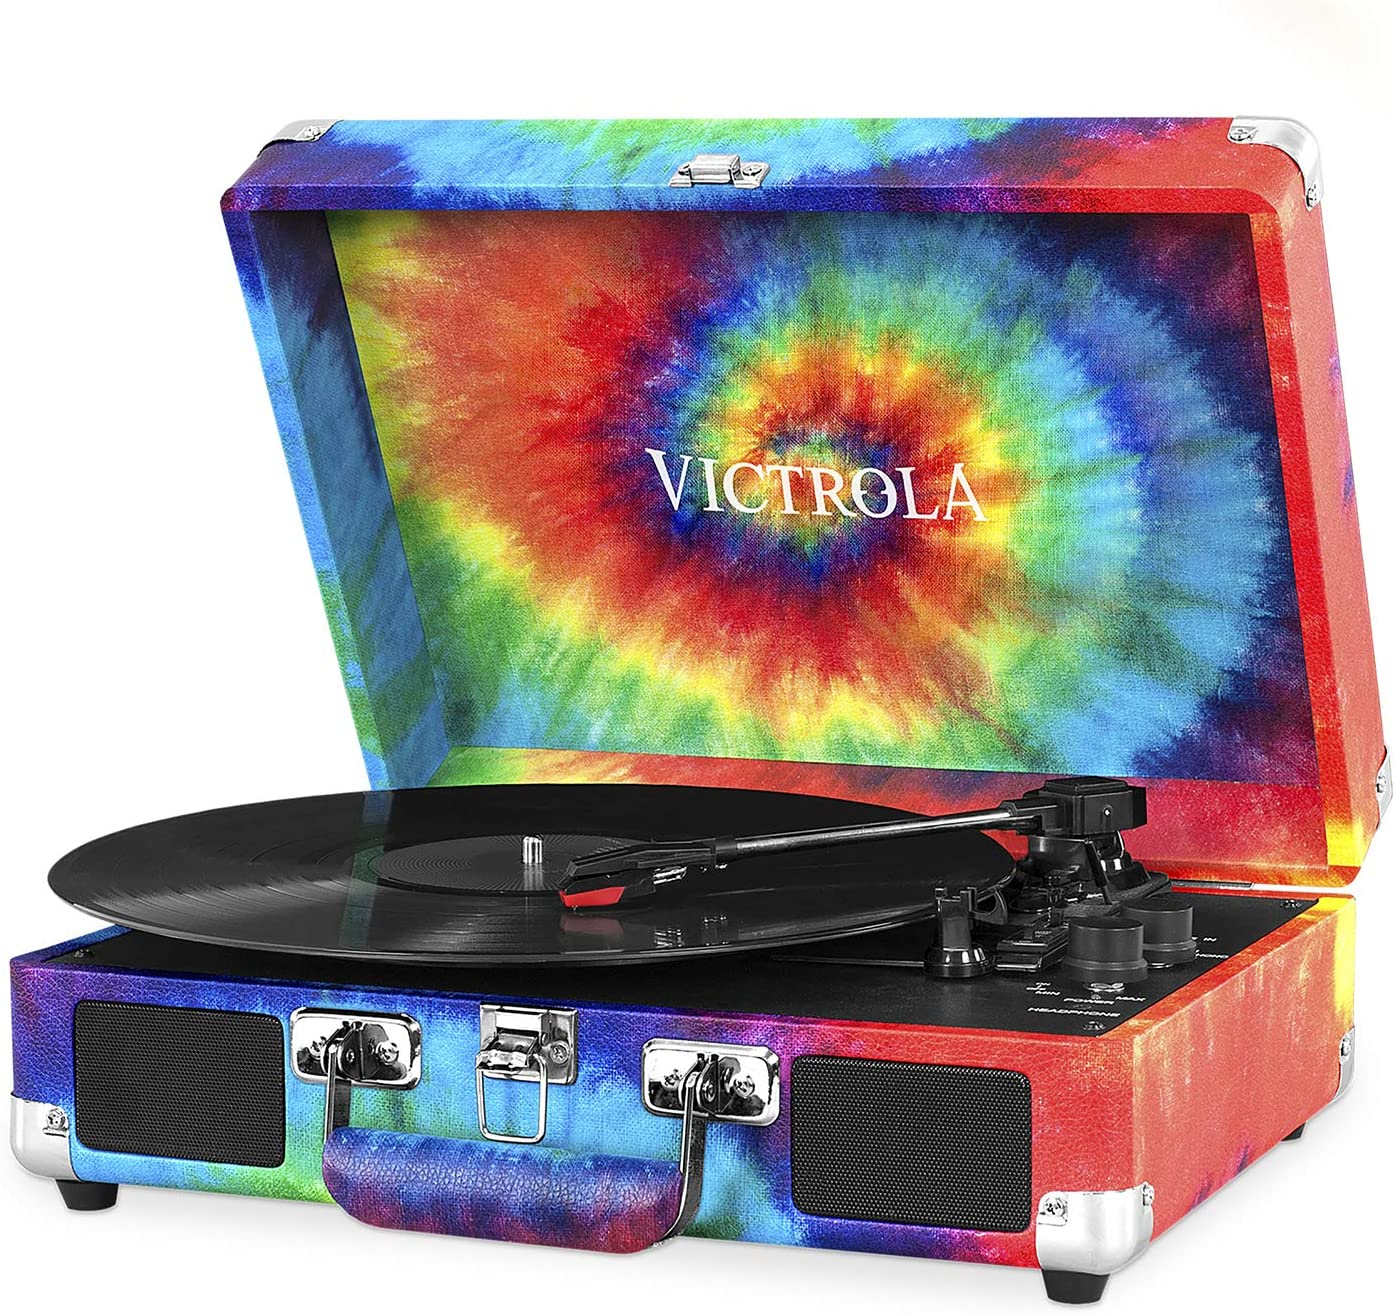 Victrola Vintage 3-Speed Bluetooth Portable Suitcase Record Player with Built-in Speakers | Upgraded Turntable Audio Sound| Includes Extra Stylus | Tie Dye, 1SFA (VSC-550BT-TDY)